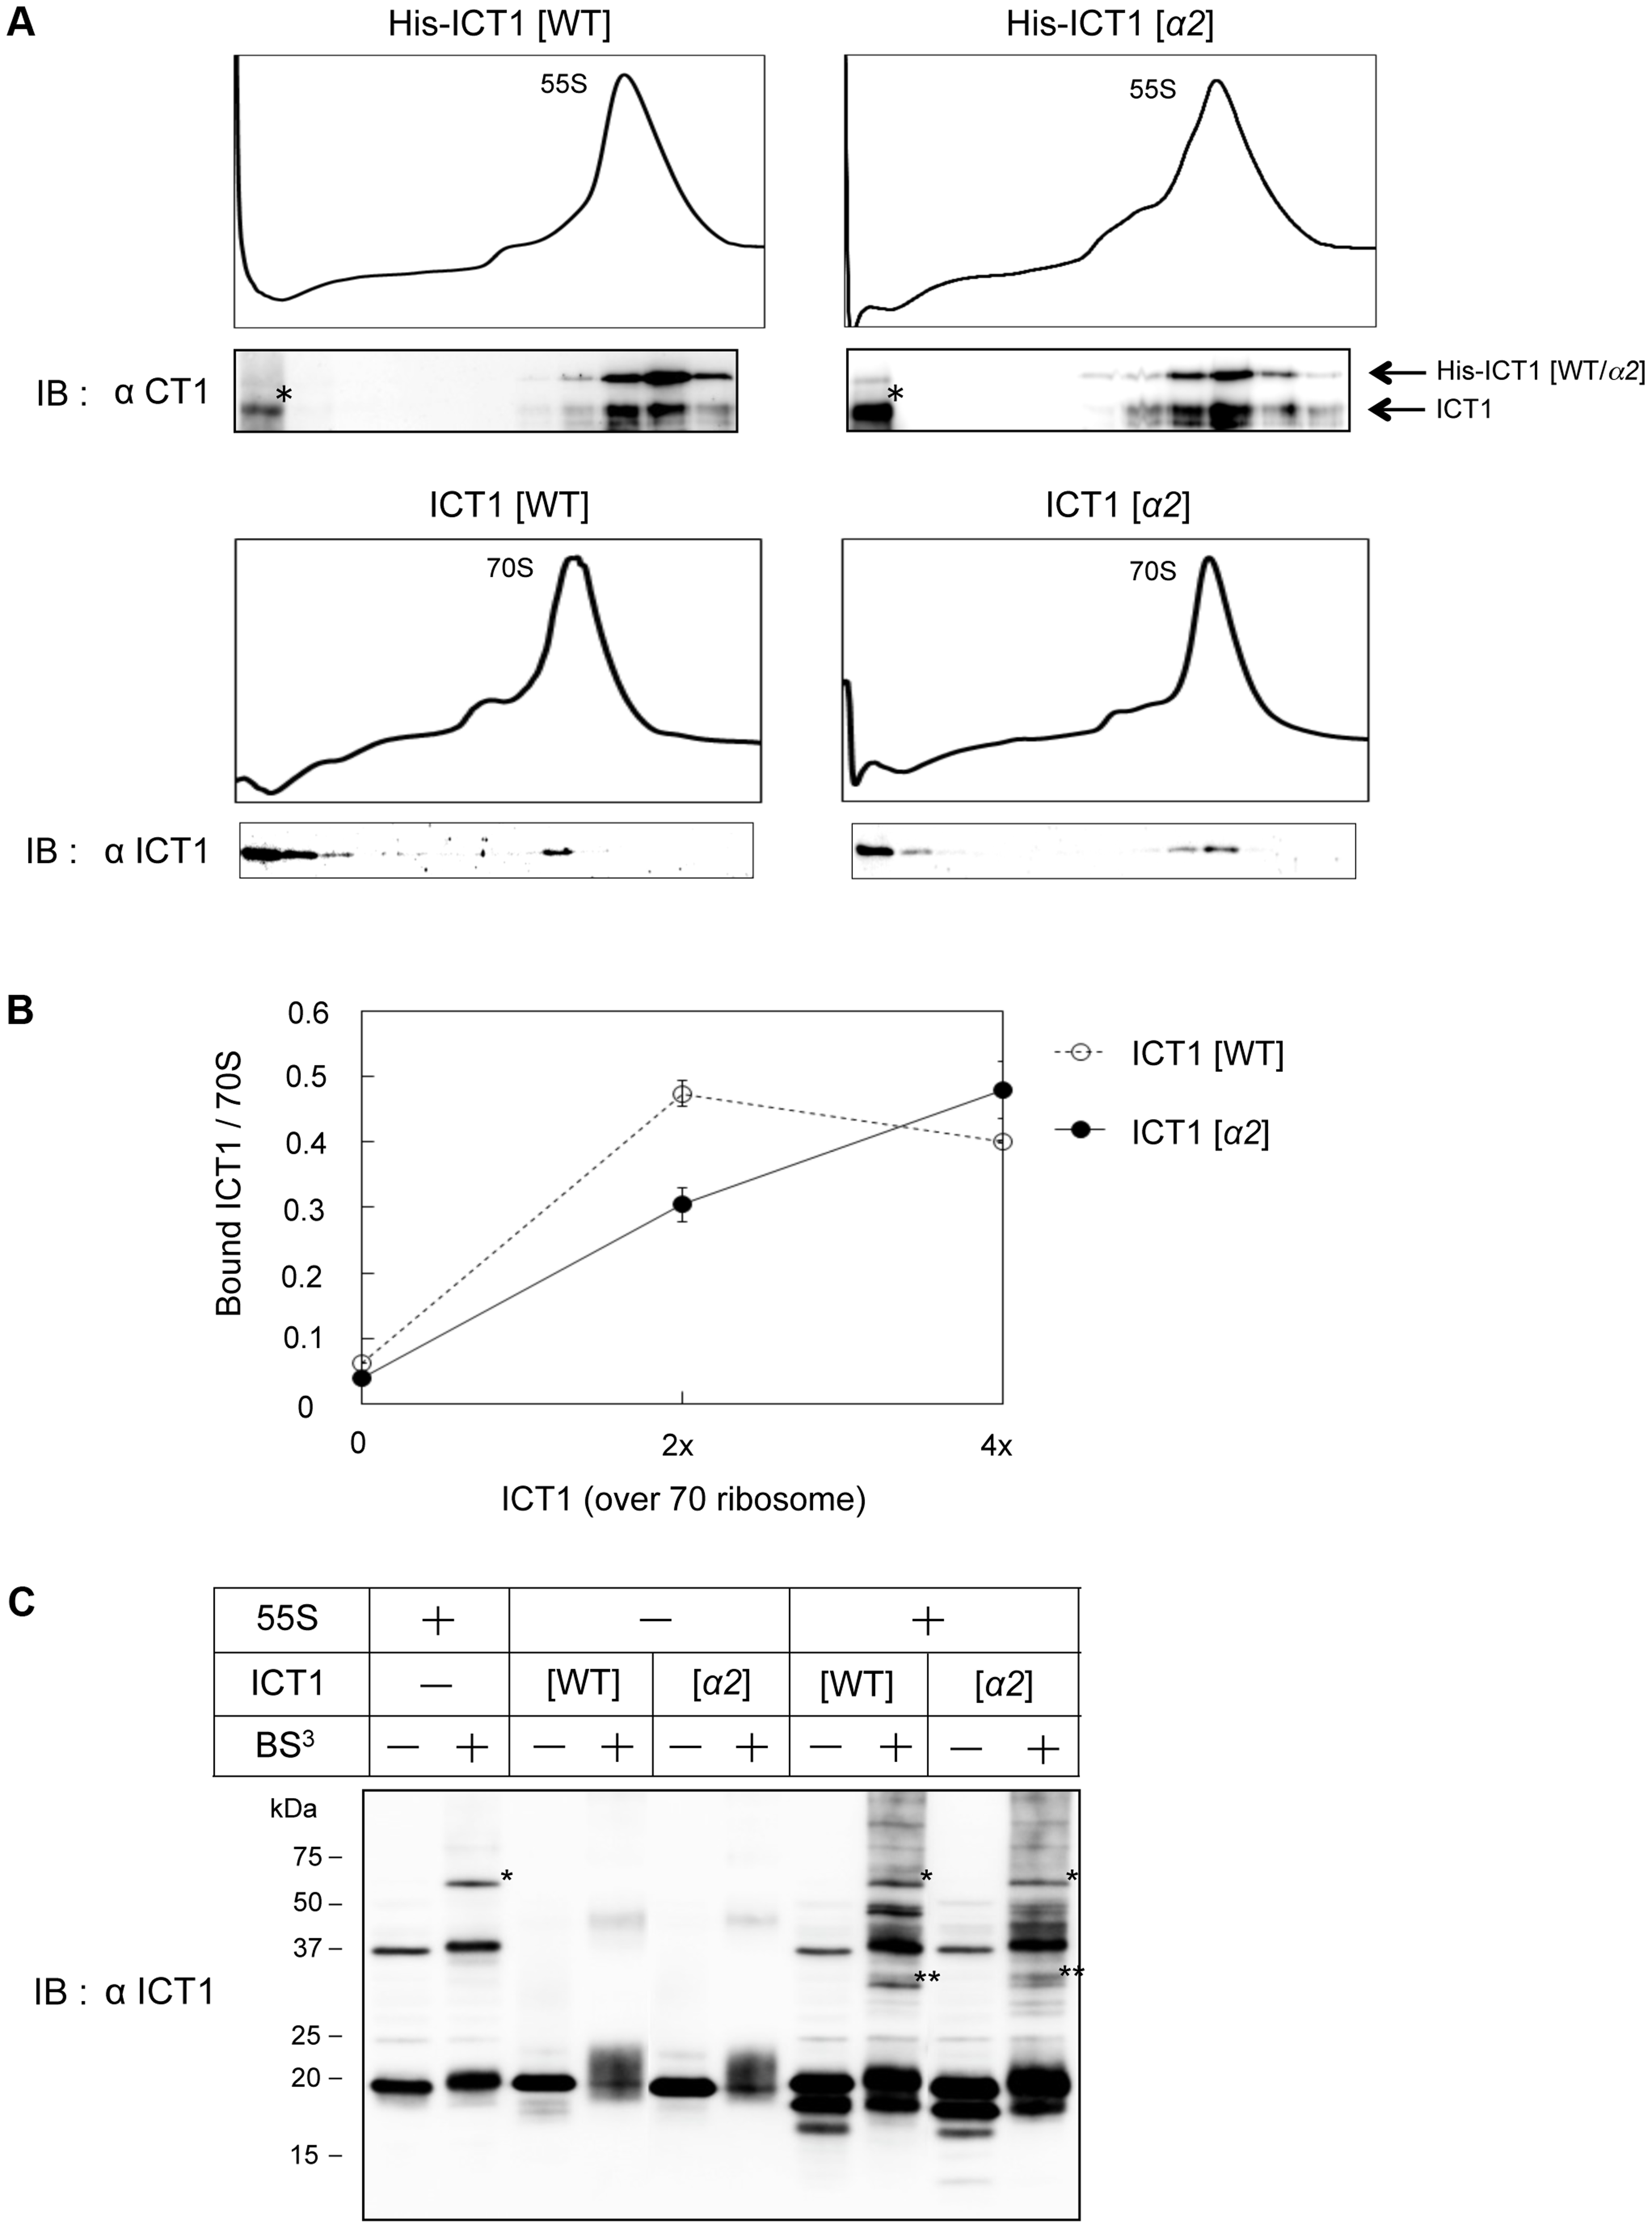 The insertion sequence in the N-terminal globular domain of ICT1 does not affect ribosome binding.